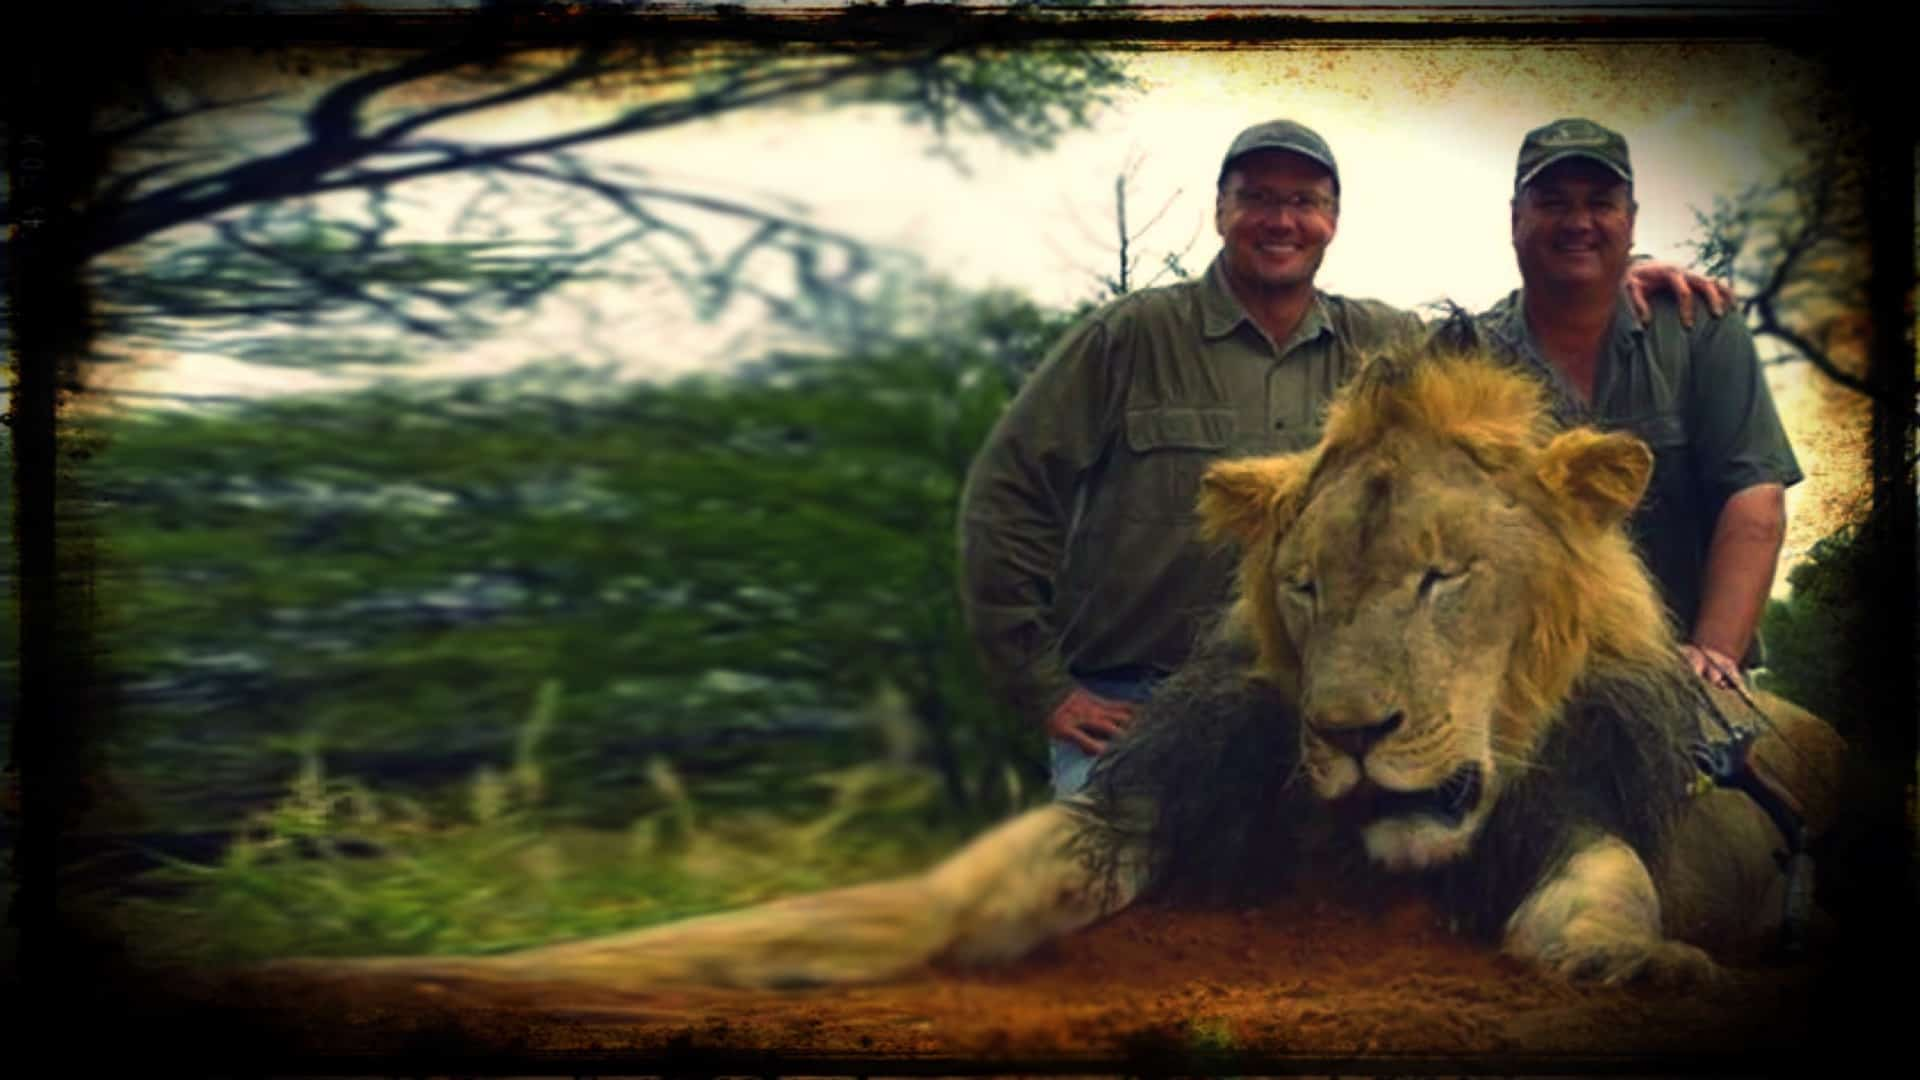 American dentist Walter Palmer is shown with another, pose for a photograph over the poor body of Cecil, a murdered lion.